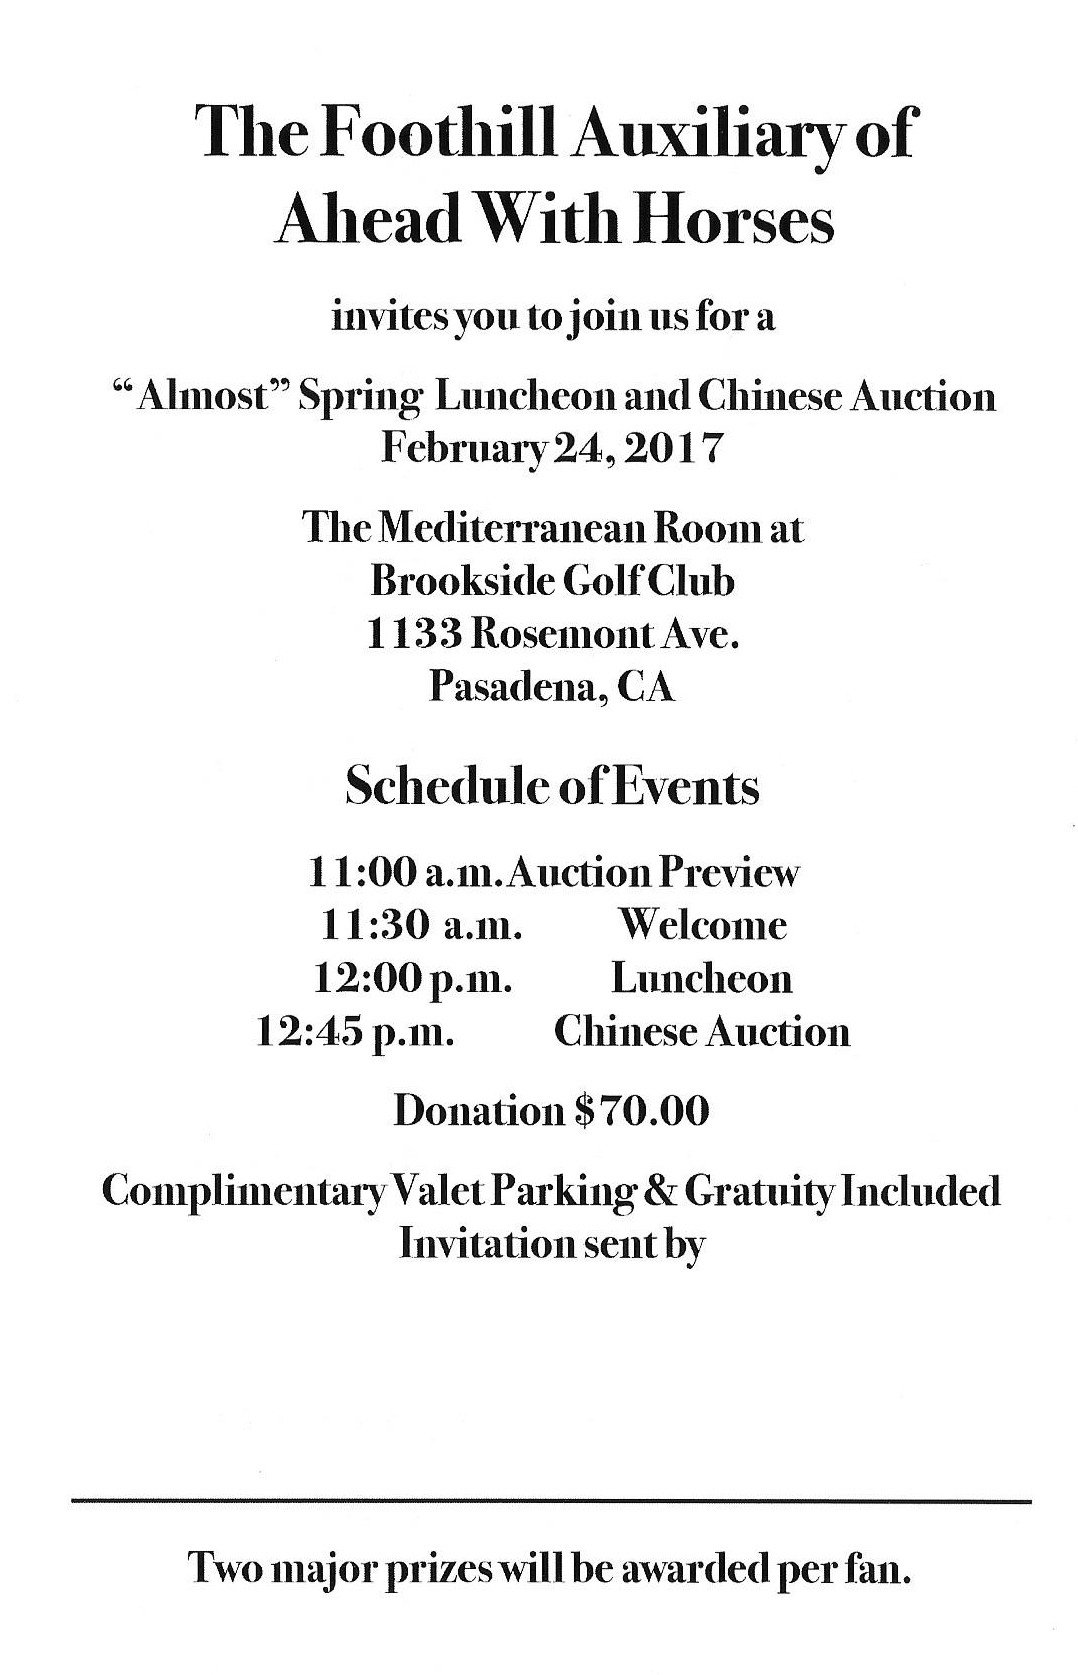 the foothill auxiliary of ahead with horses annual luncheon on friday february 24 2017 at 1100am at the brookside golf club in pasadena